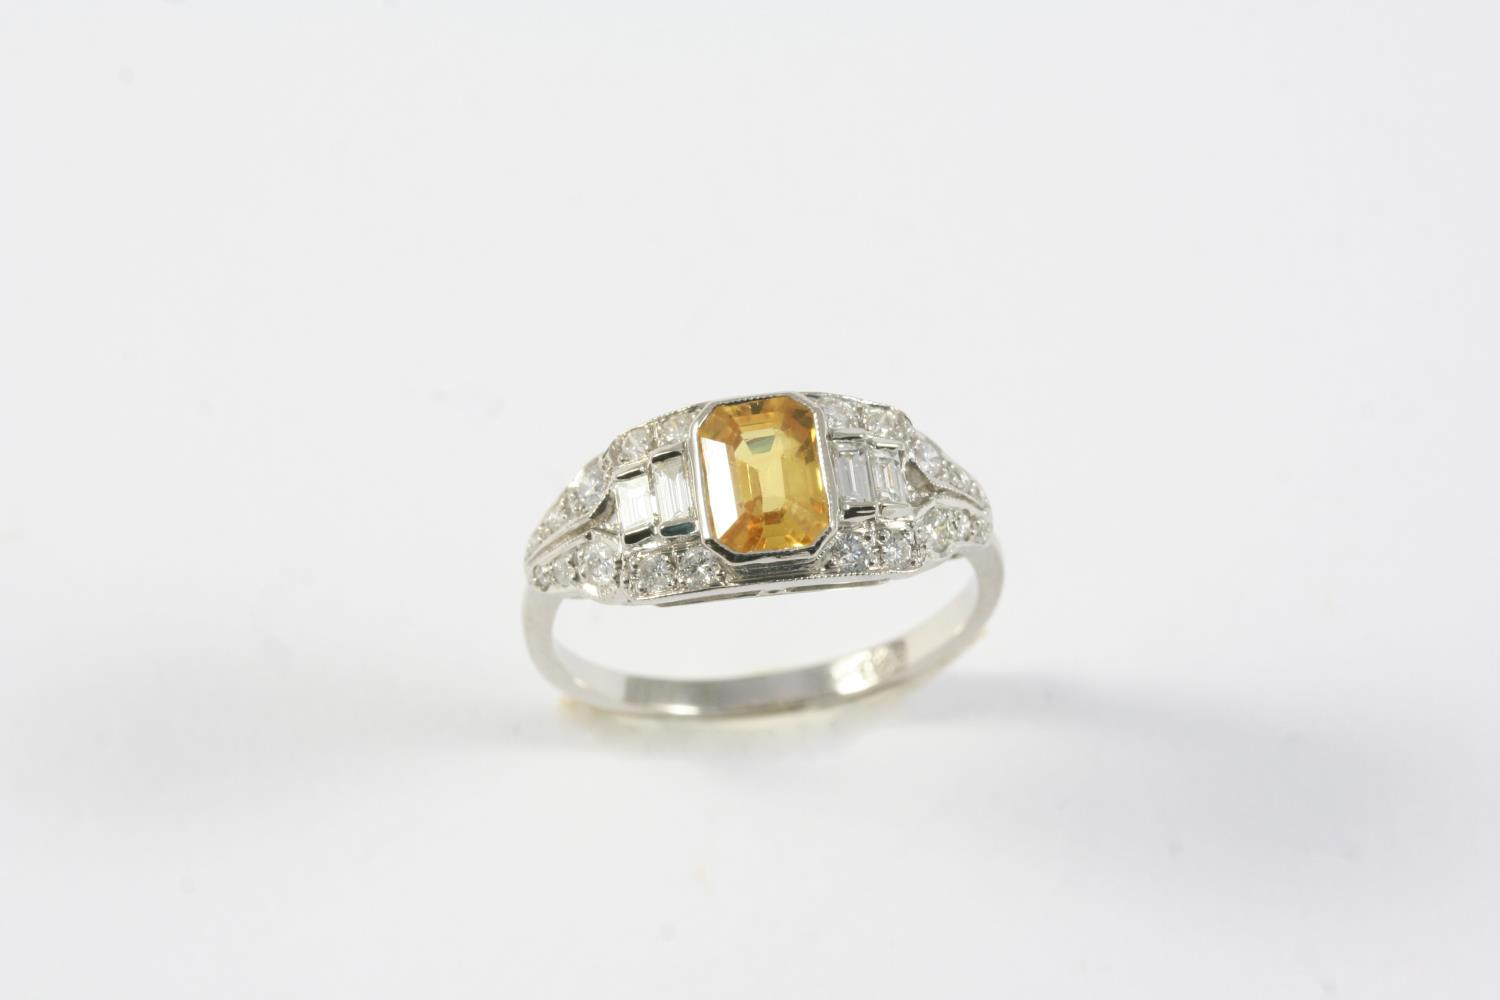 A YELLOW SAPPHIRE AND DIAMOND RING the cut cornered rectangular-shaped yellow sapphire is set within